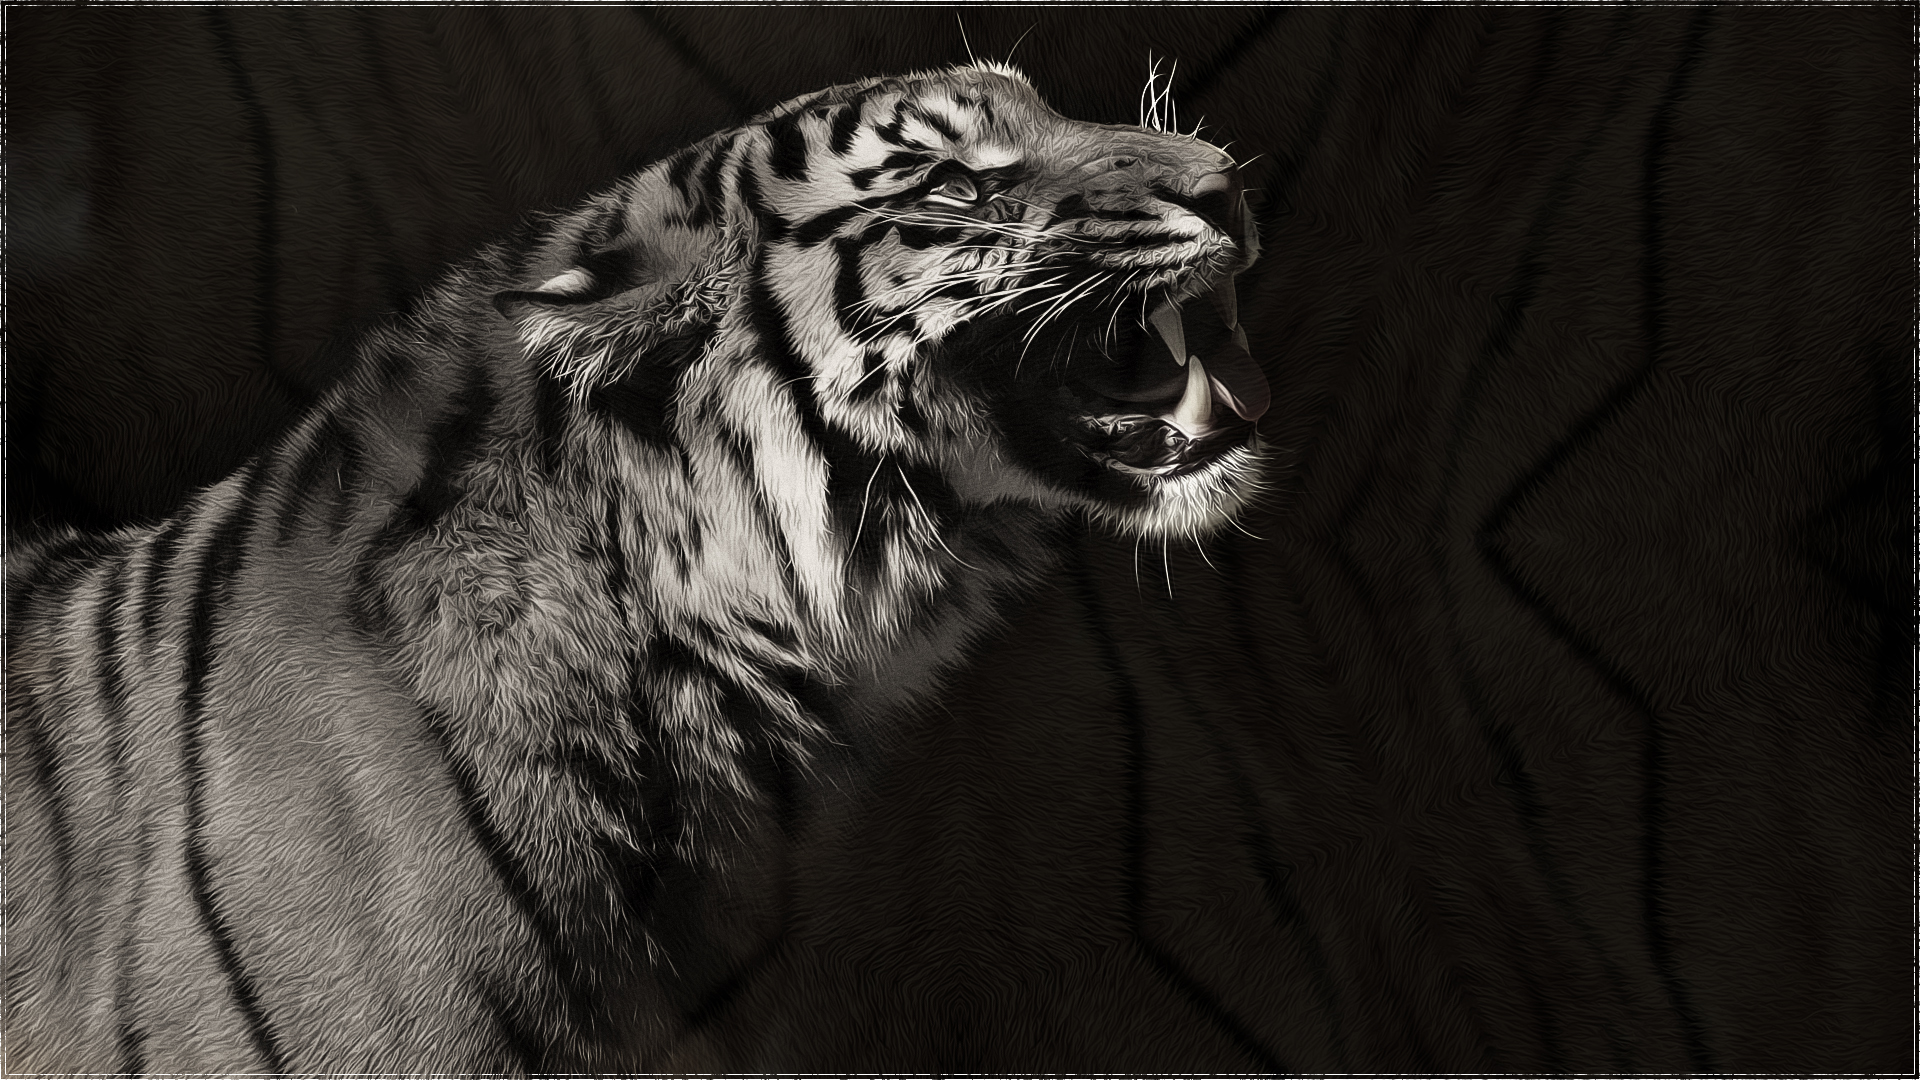 tiger wallpaper black and white - crazywidow